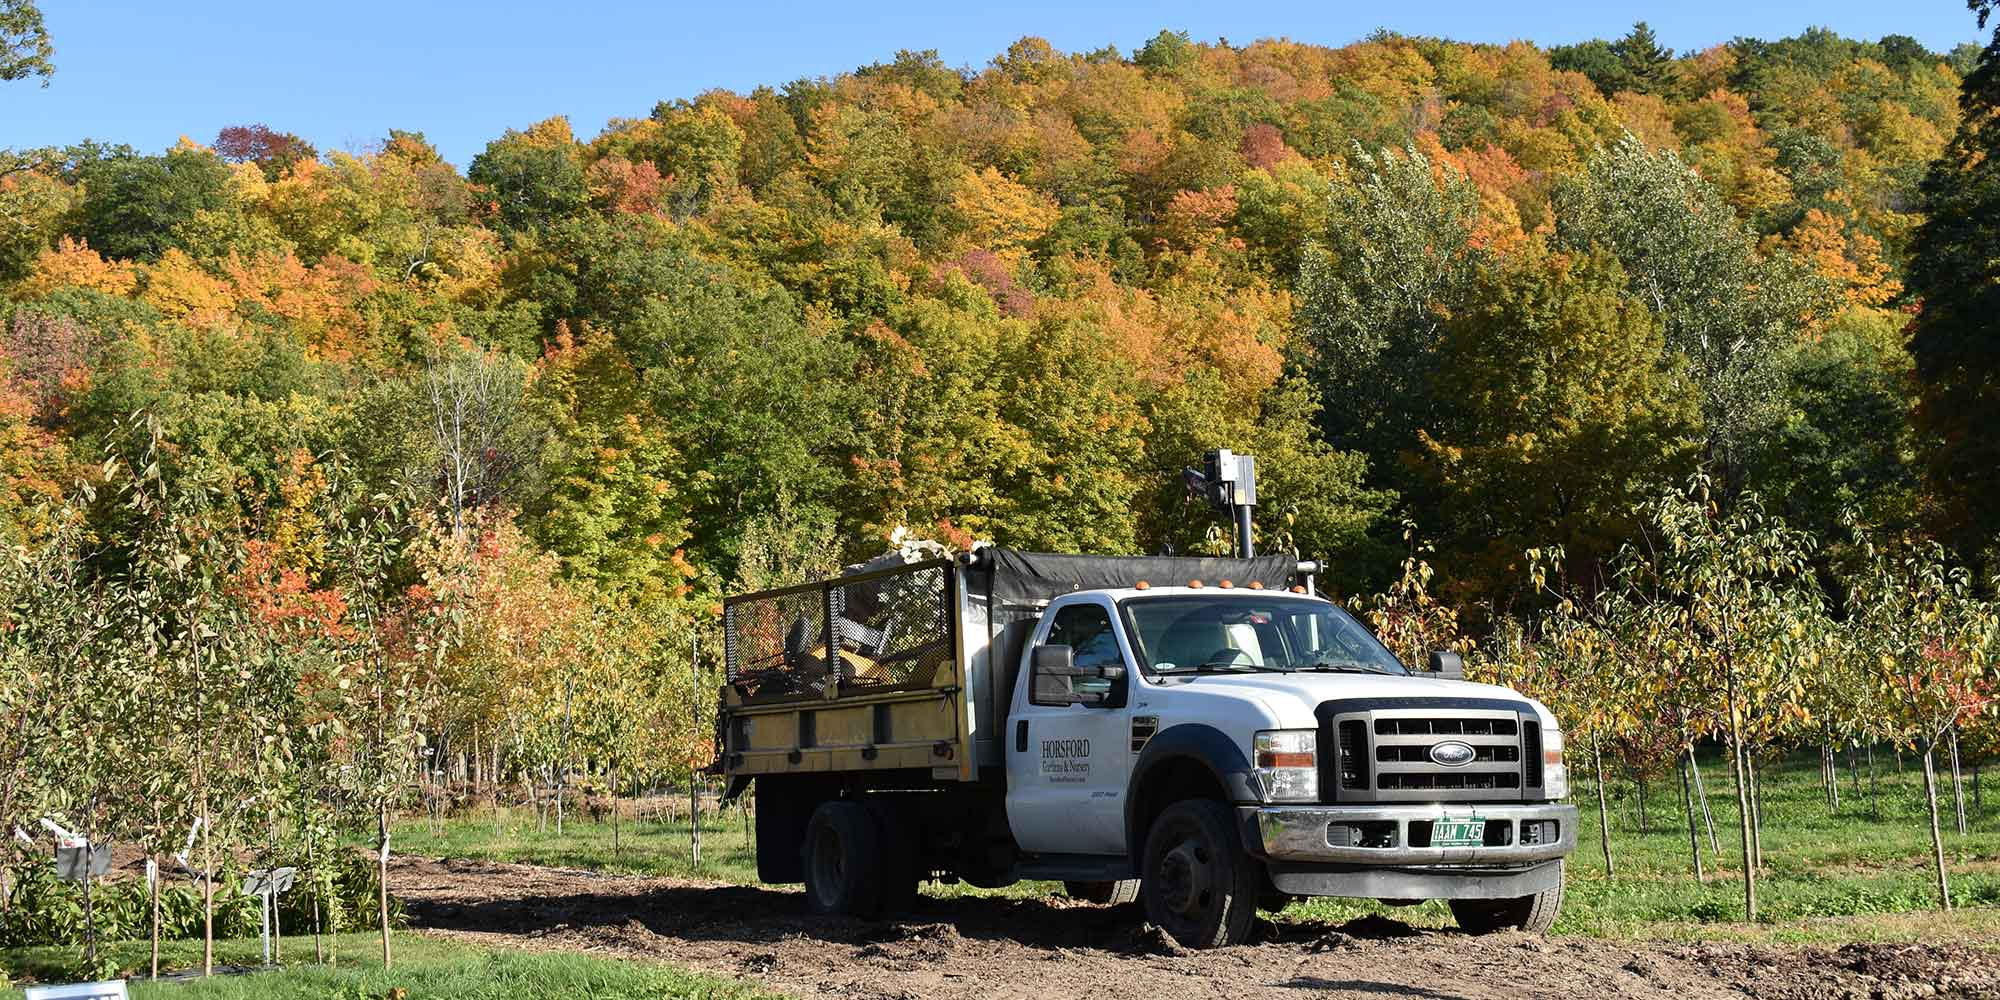 Horsford delivery truck and fall foliage